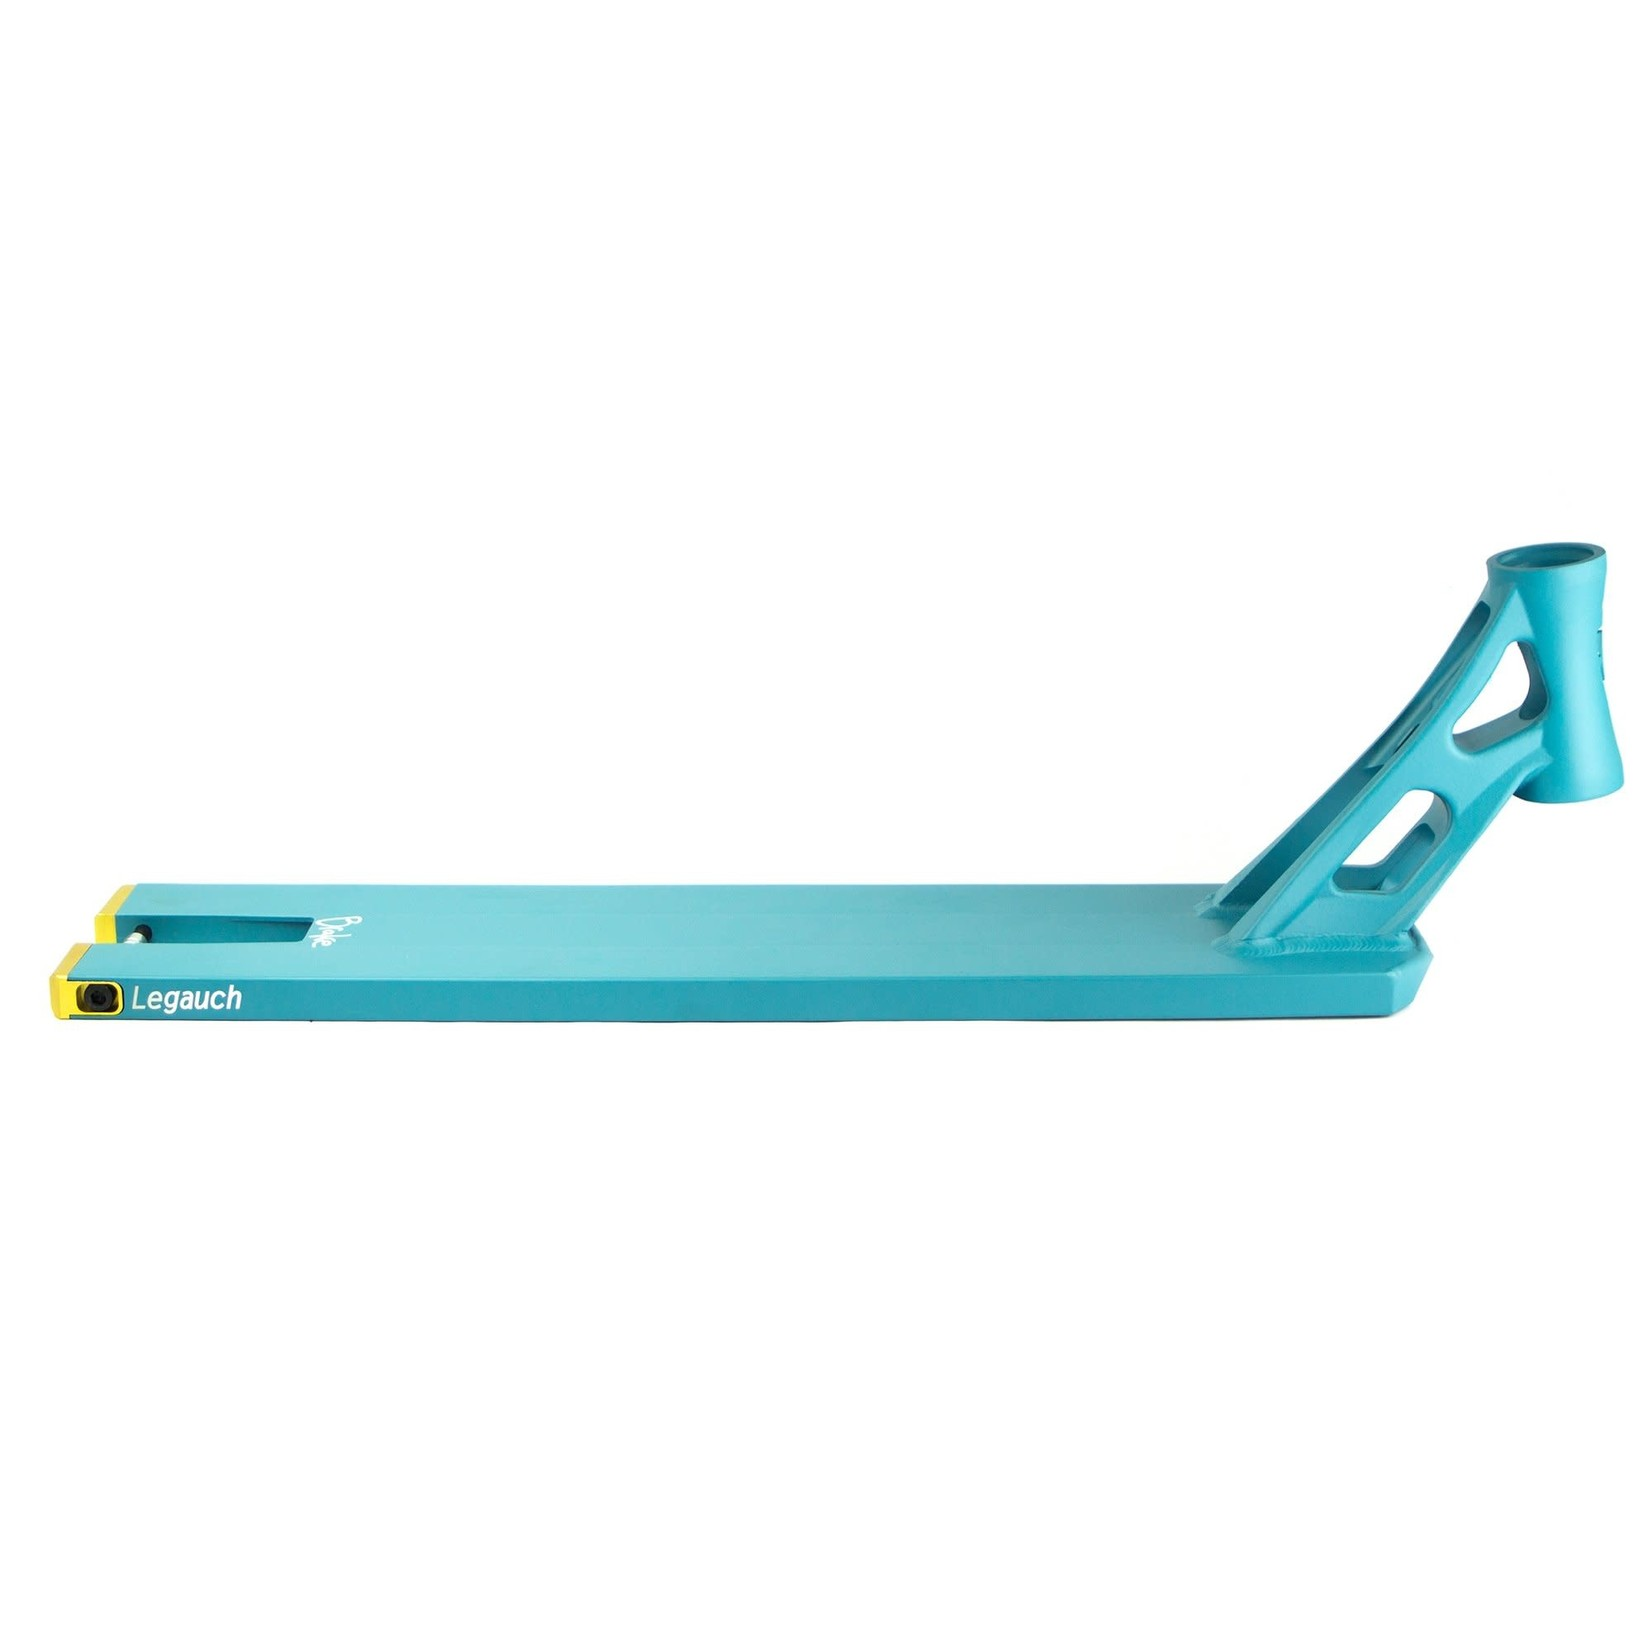 """North North - Scooter Deck - Transit 3D Forged Legauch Signature 5.3"""" x 22"""" - Matte Junebug"""